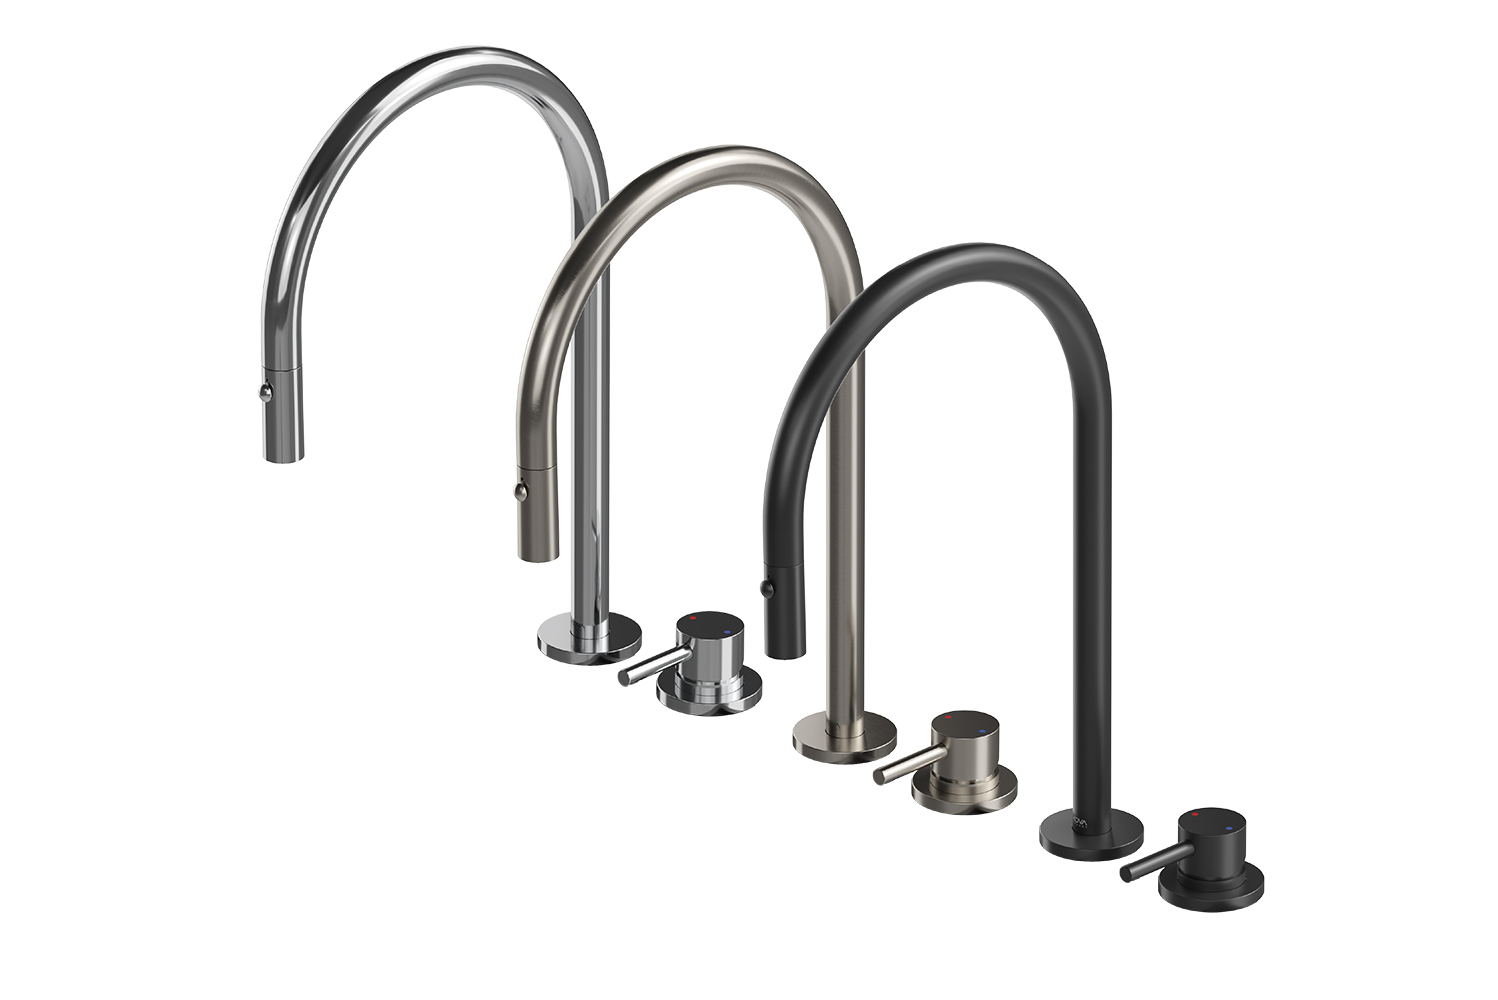 The shared parts and pieces within the modular plumbing system allow builders to work from one standard kit of parts with a range of configurations.